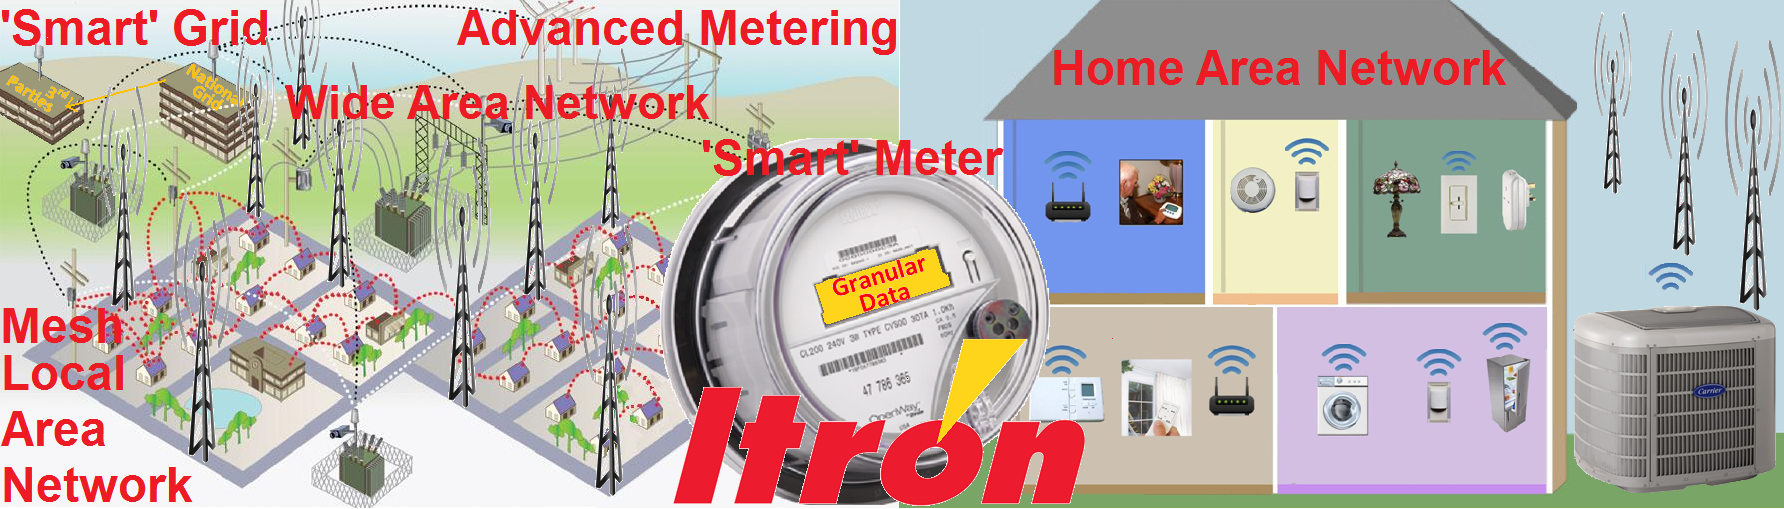 'Smart' Grid Meters Network Graphic